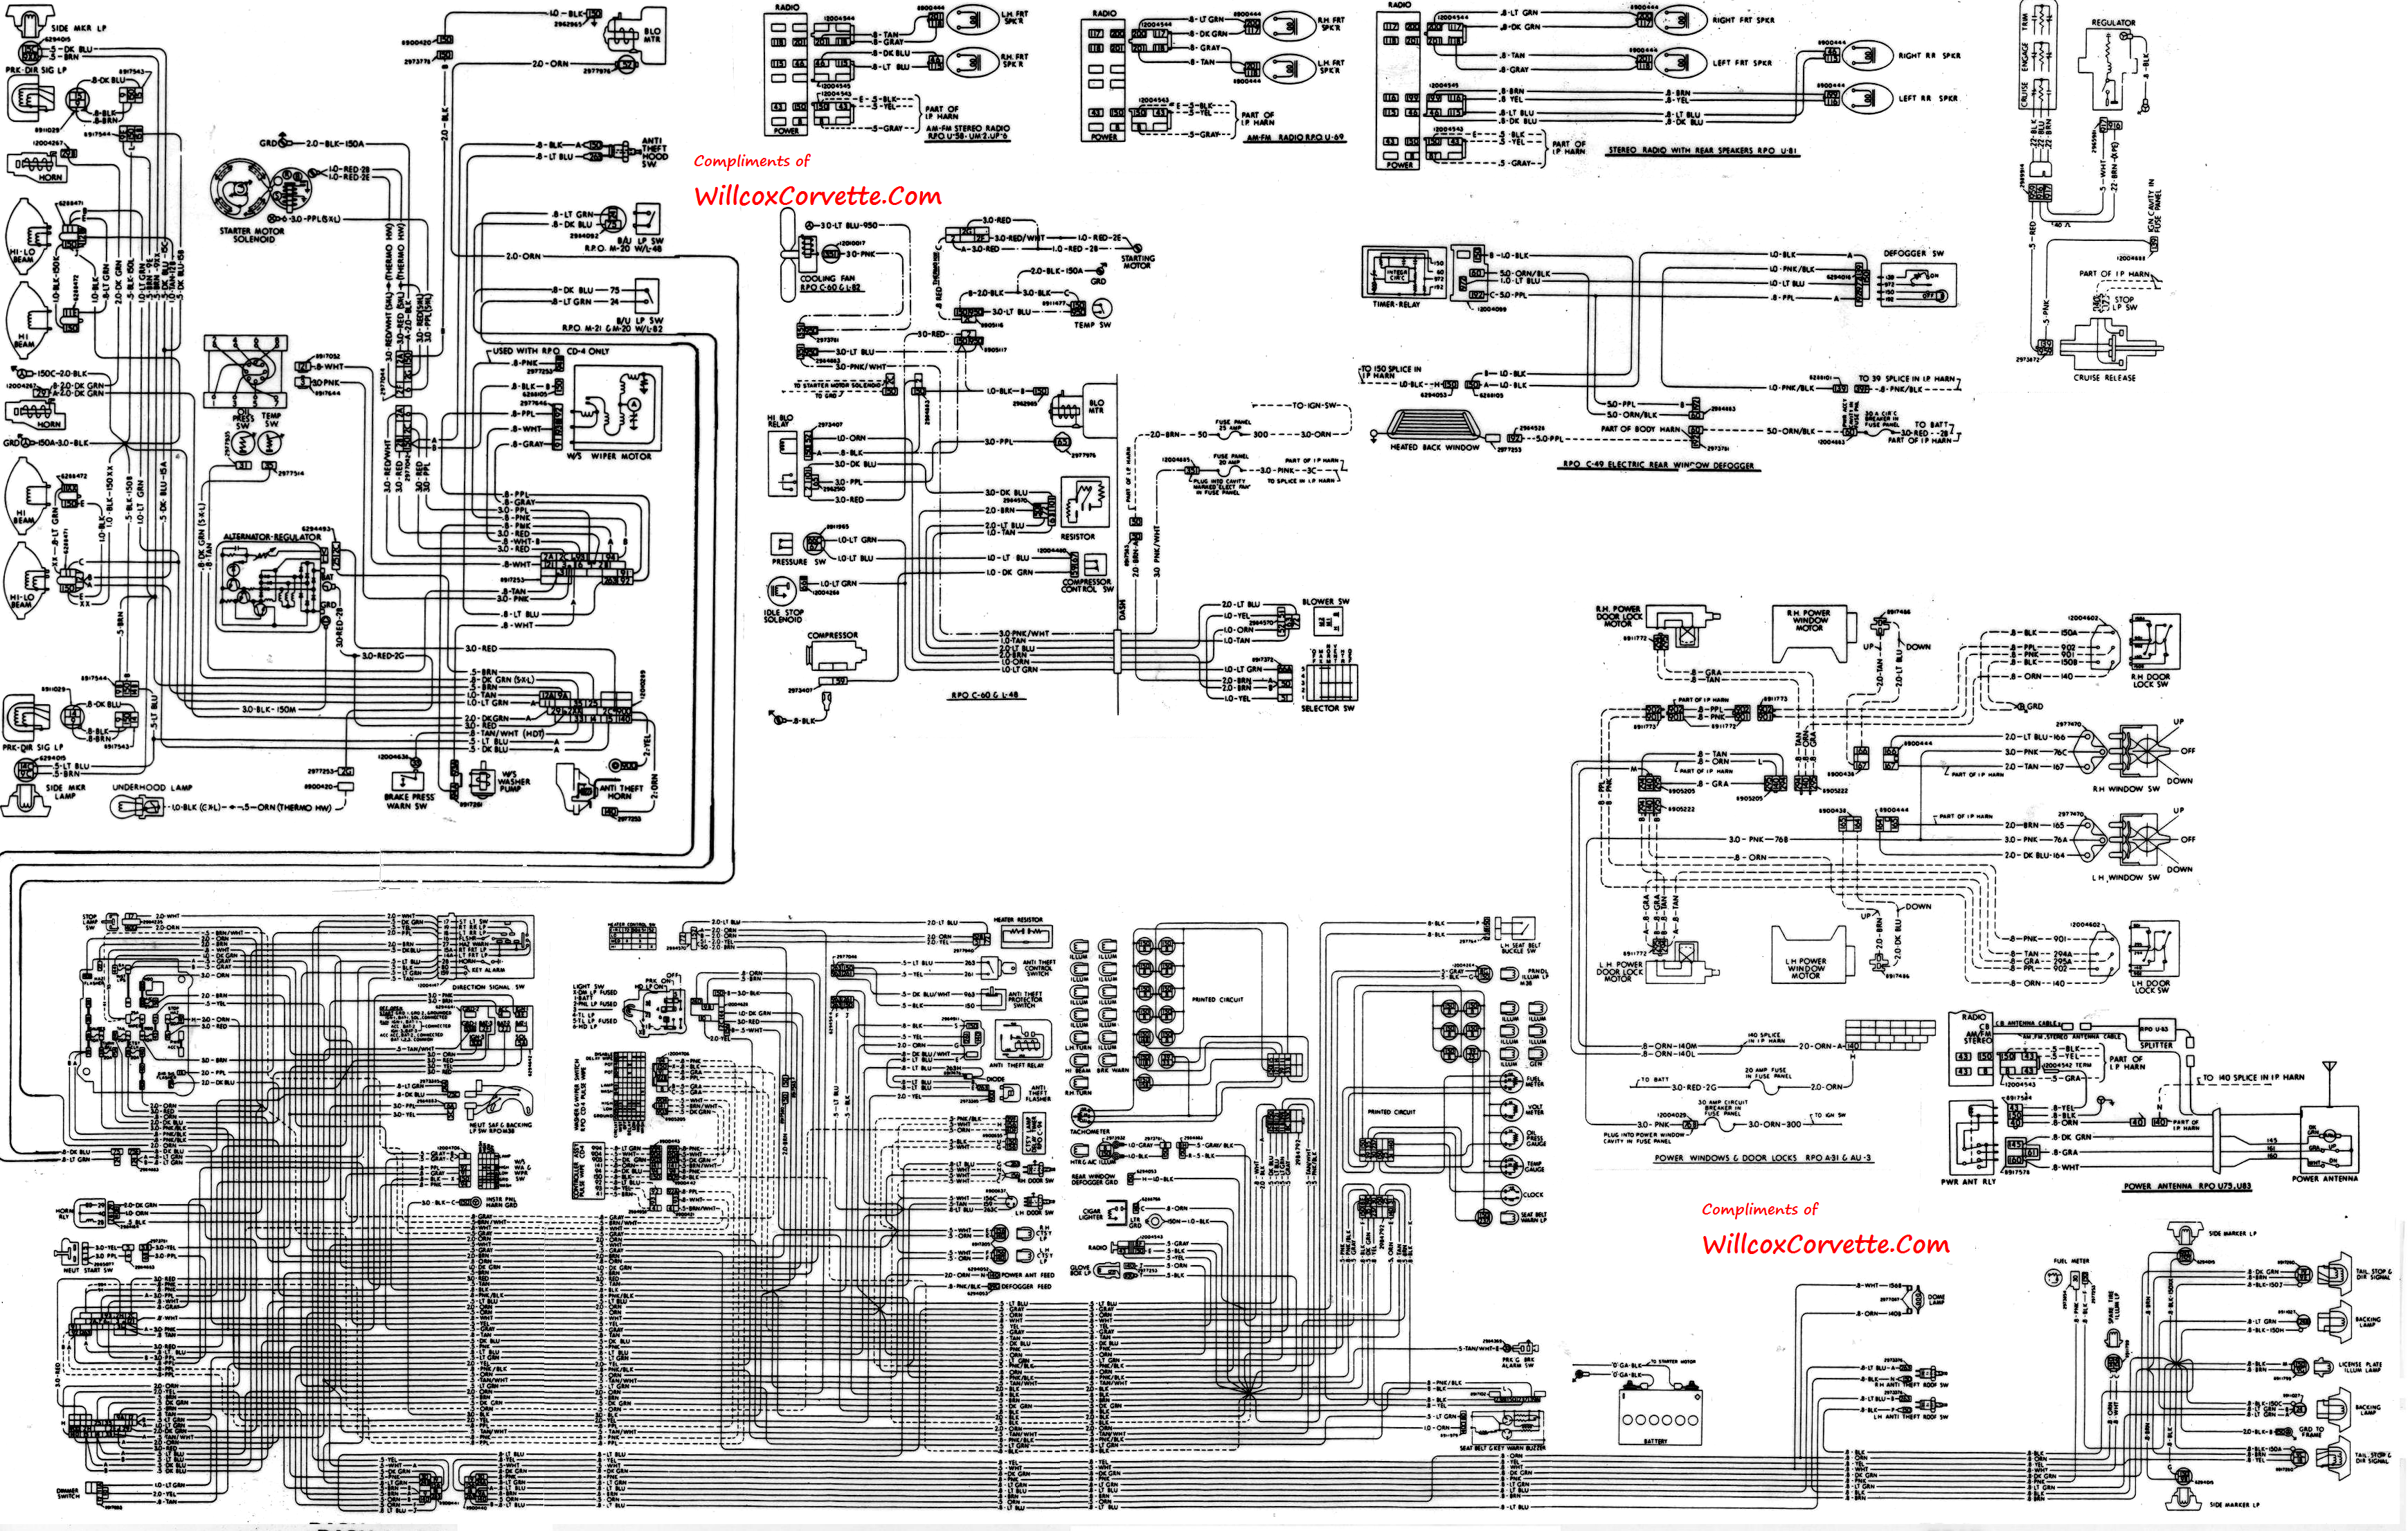 1979 wire diagram 1979 corvette tracer wiring diagram tracer schematic willcox corvette wiring diagram at gsmportal.co